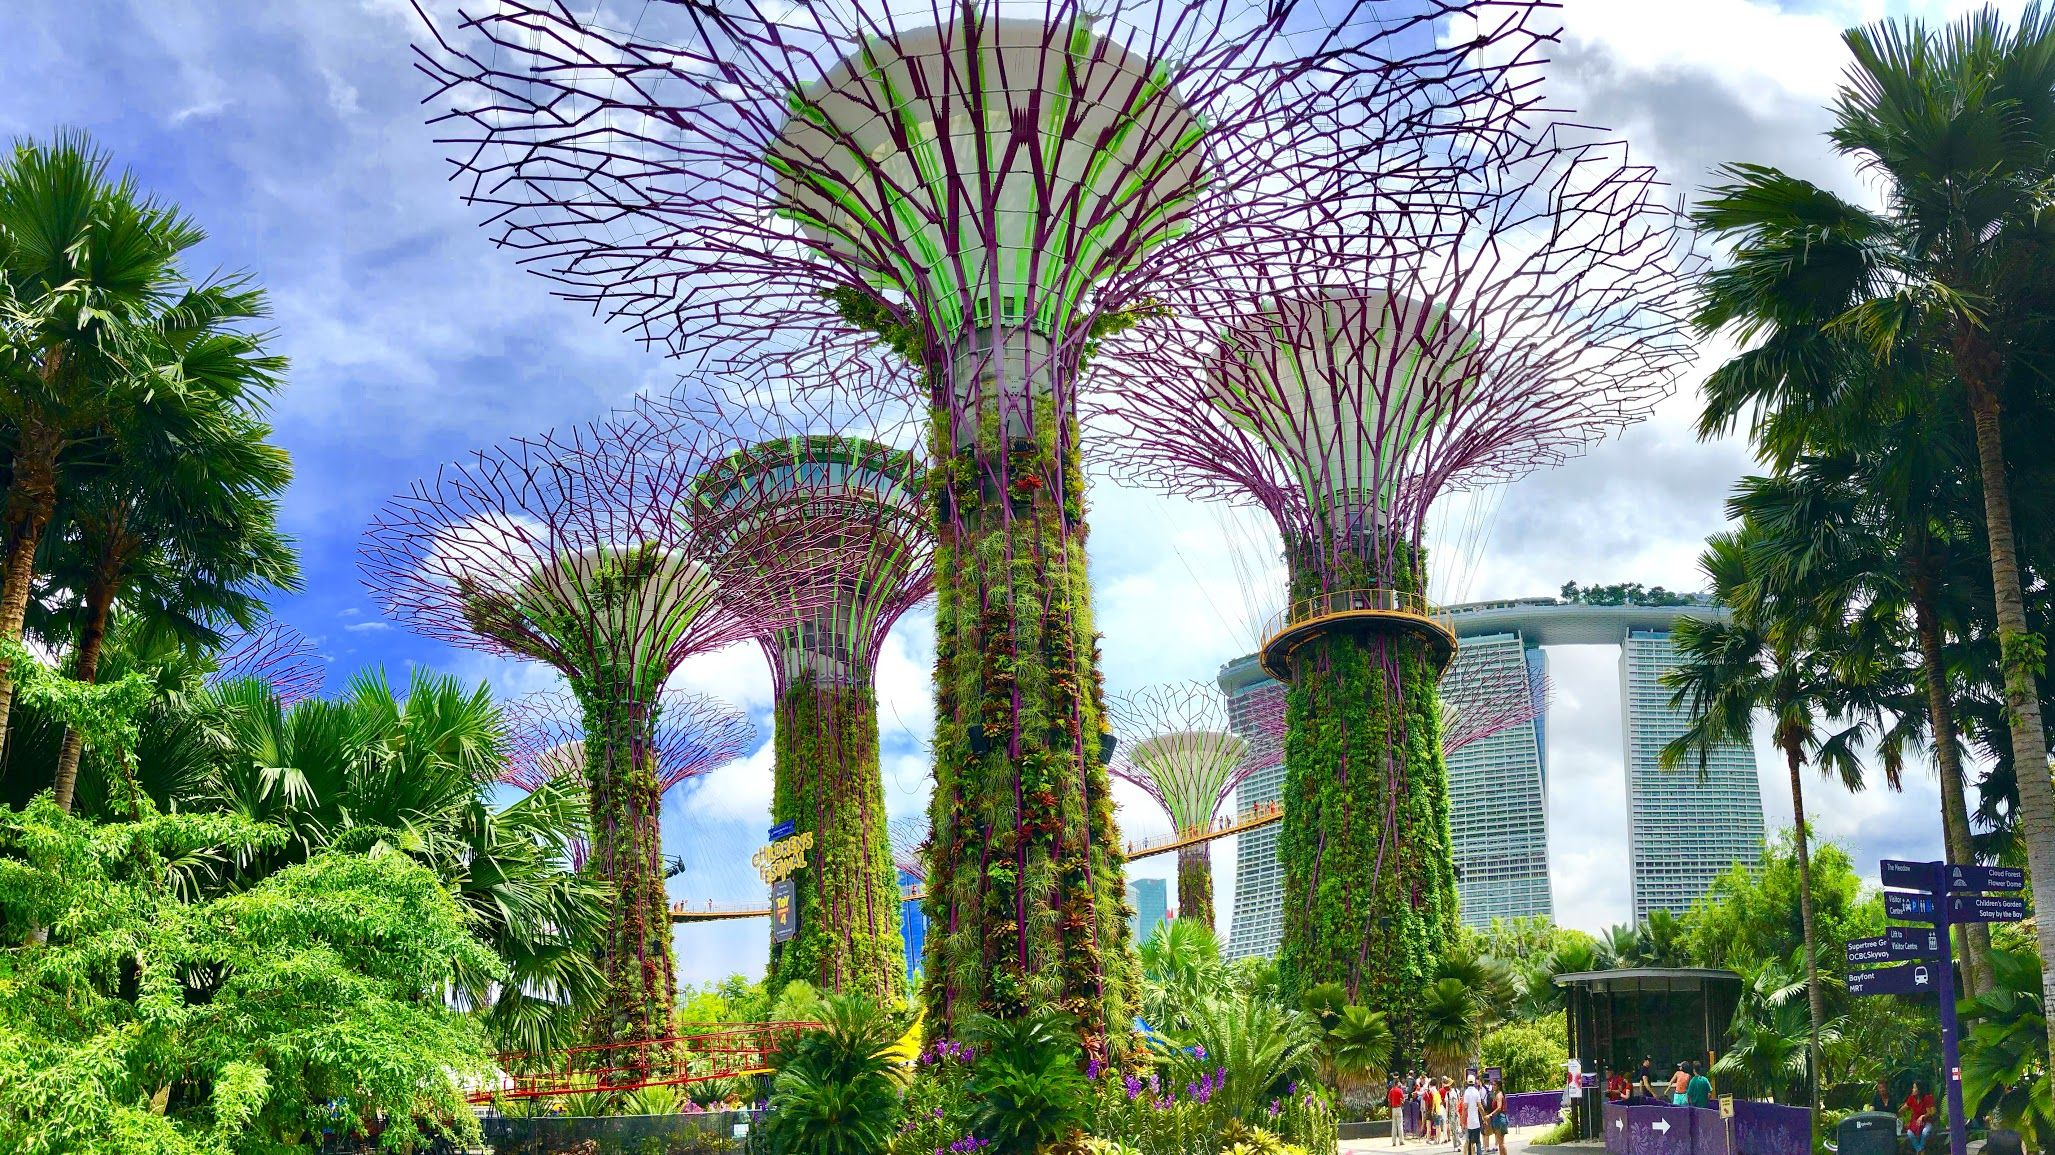 93e2fd3b1d45a925dd80ea04282bdadc - Gardens By The Bay Singapore On Budget